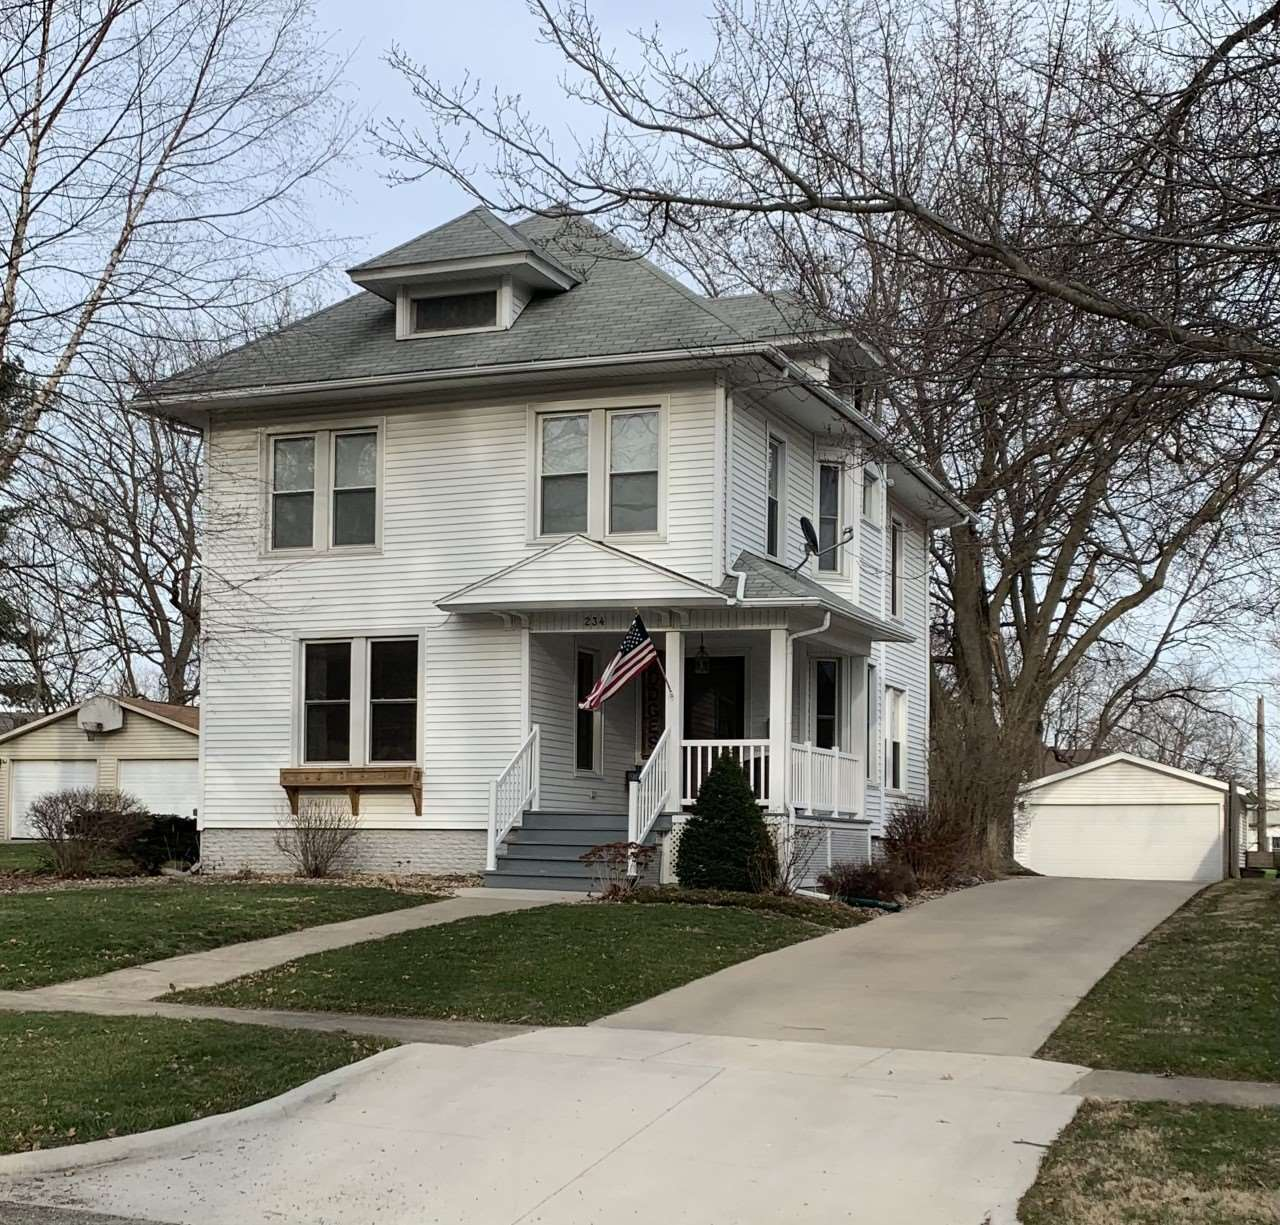 234 S CHESTNUT Property Photo - Kewanee, IL real estate listing